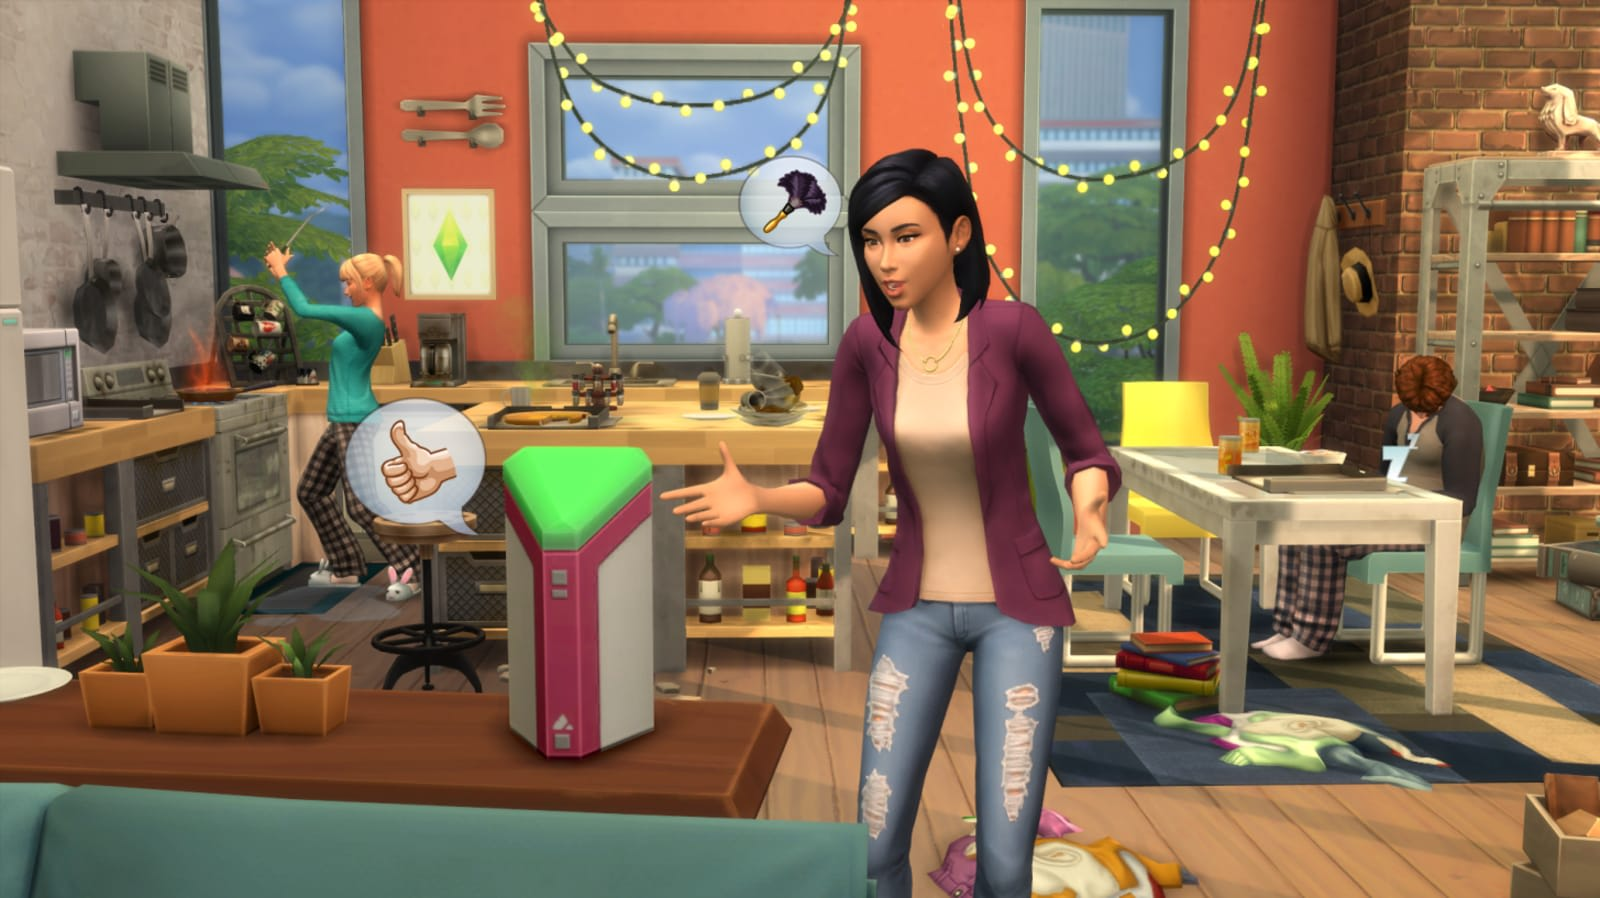 The Sims' Alexa Skill is a game companion for superfans